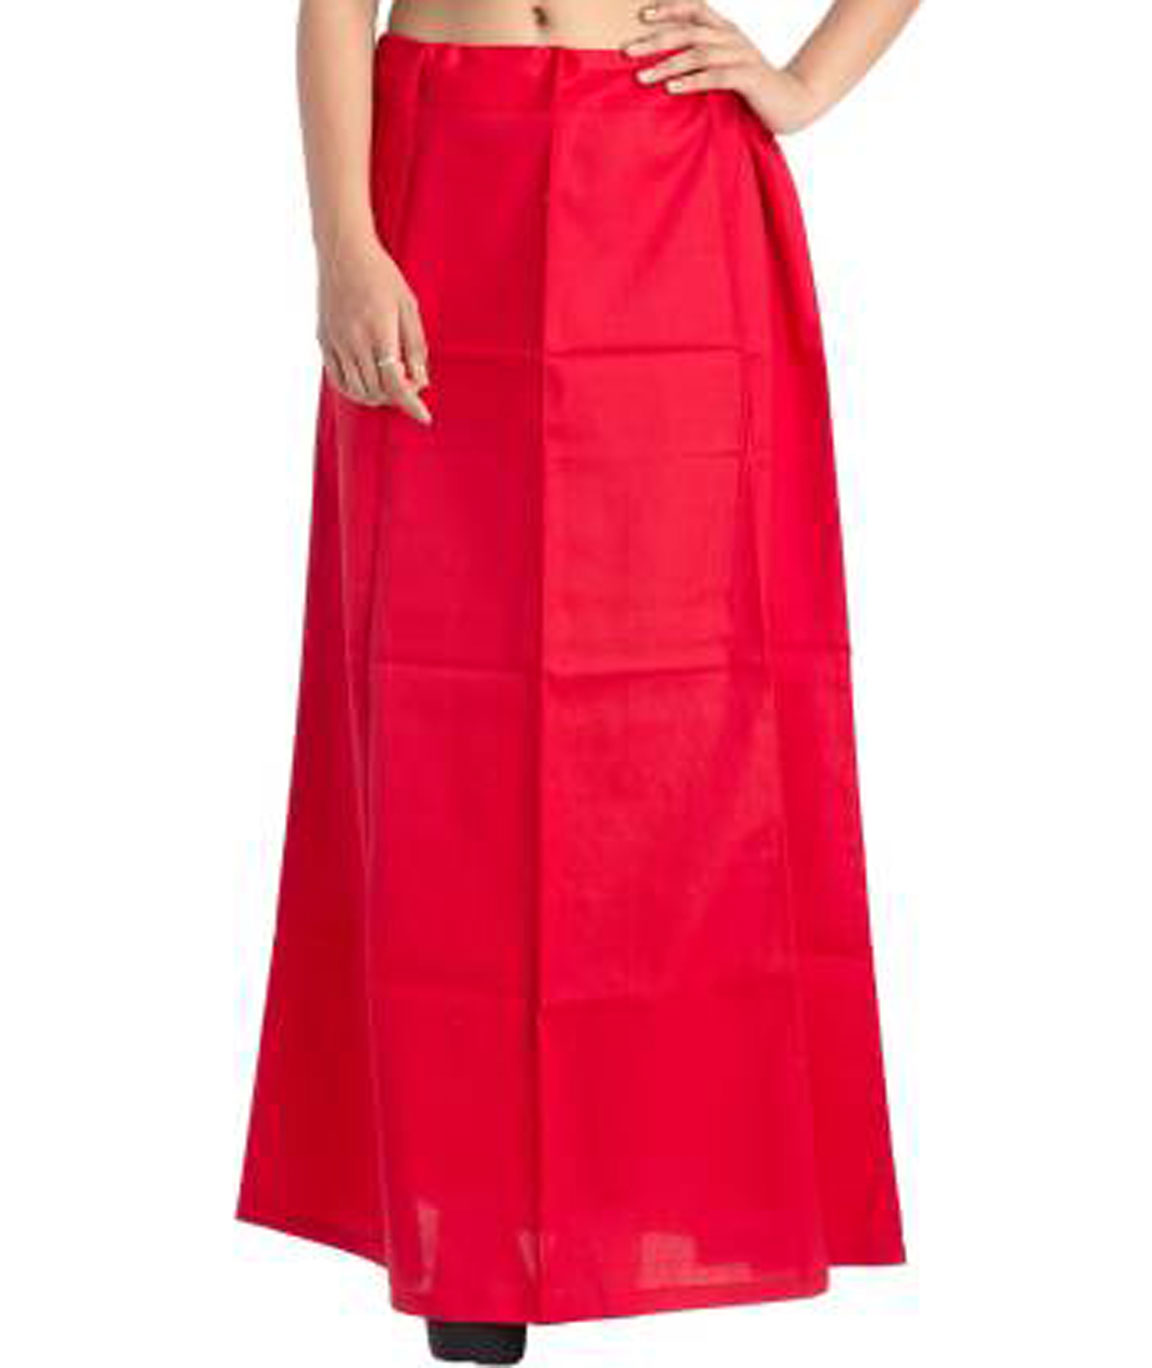 I KING COTTON BLEND PETTICOAT (RED)